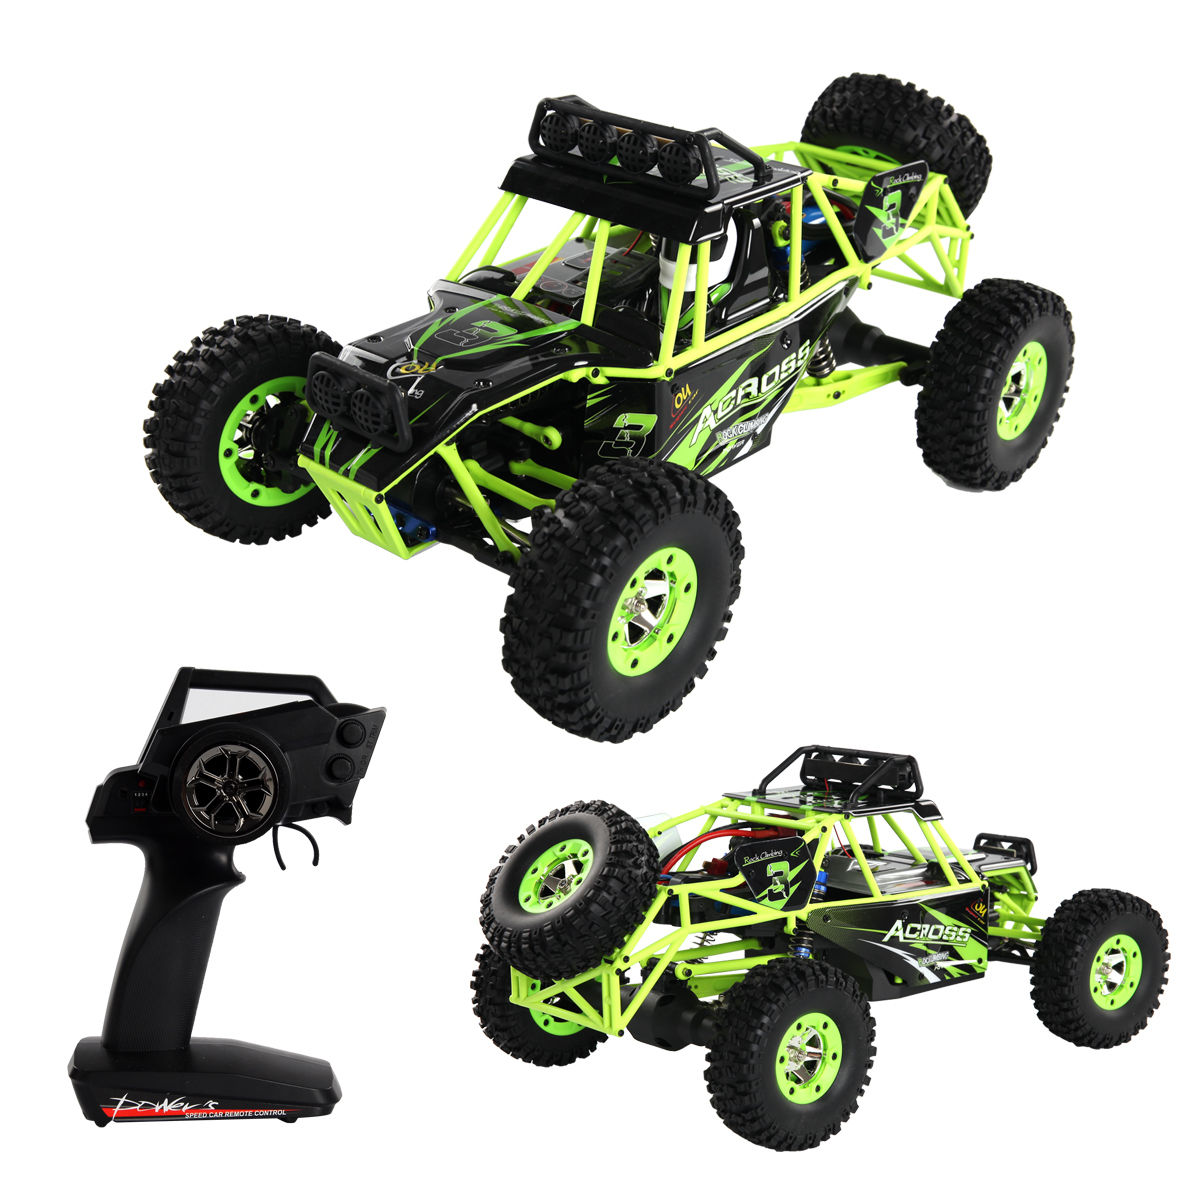 Costway 1:12 2.4G 2WD RC Off-Road Racing Car Radio Remote Control Rock Crawler Truck RTR by Costway